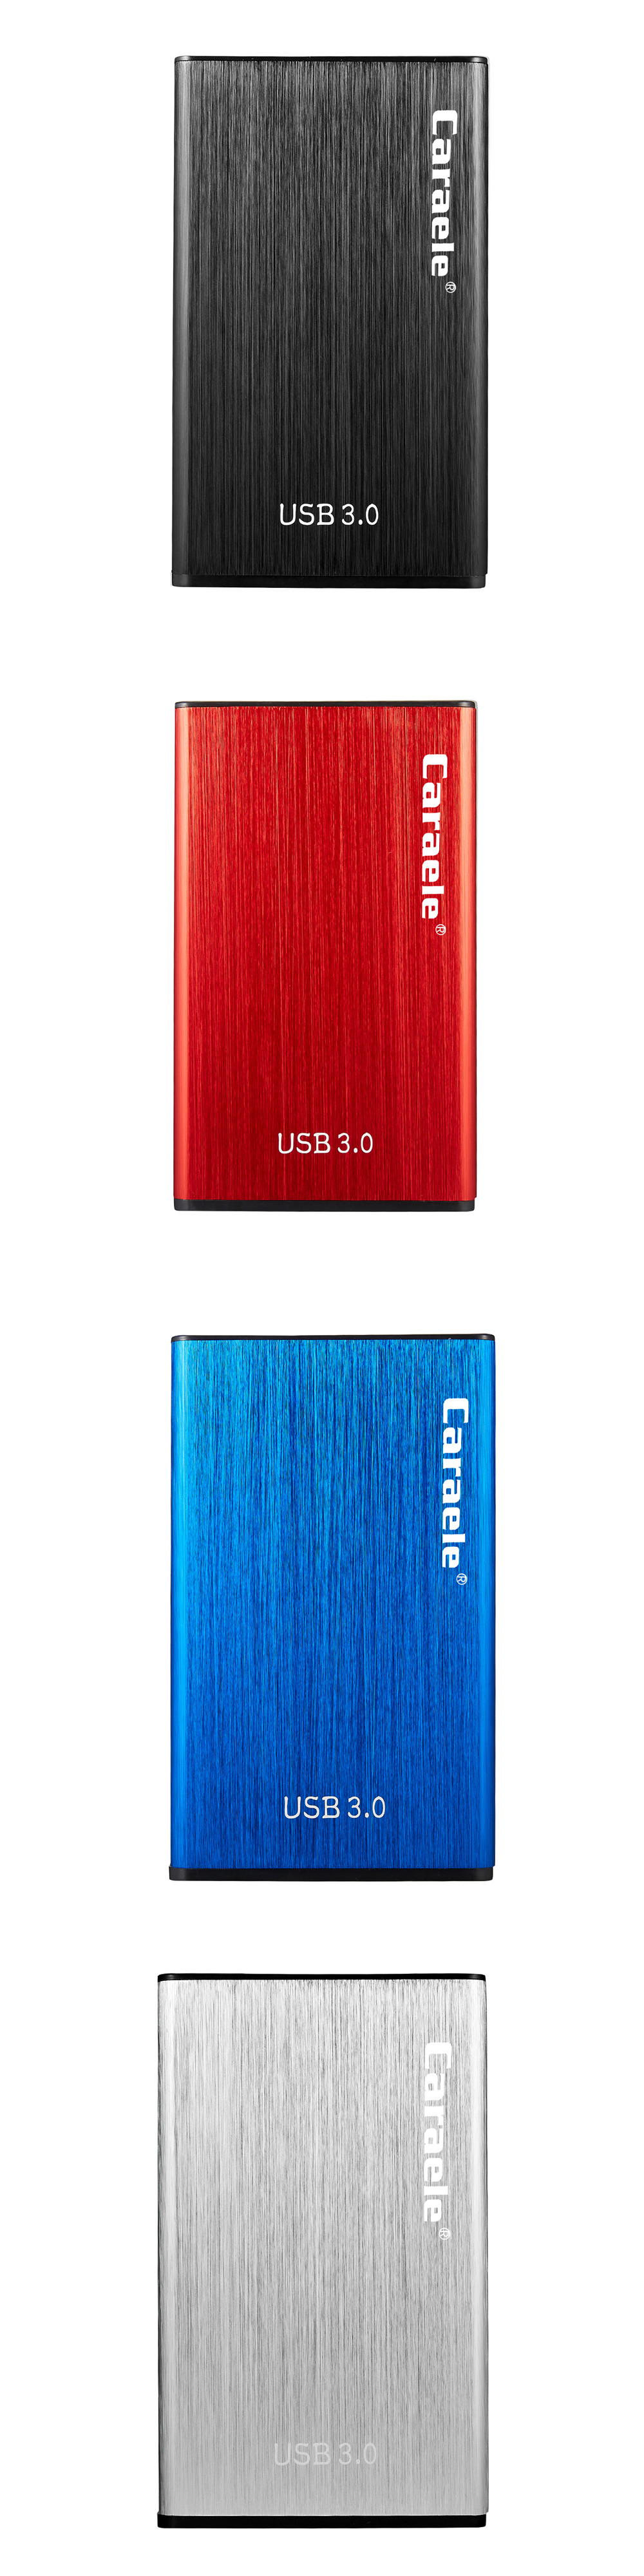 Caraele H5 USB 3.0 Portable External Hard Drive 500GB 1TB 2TB for Laptop Desktop TV PC